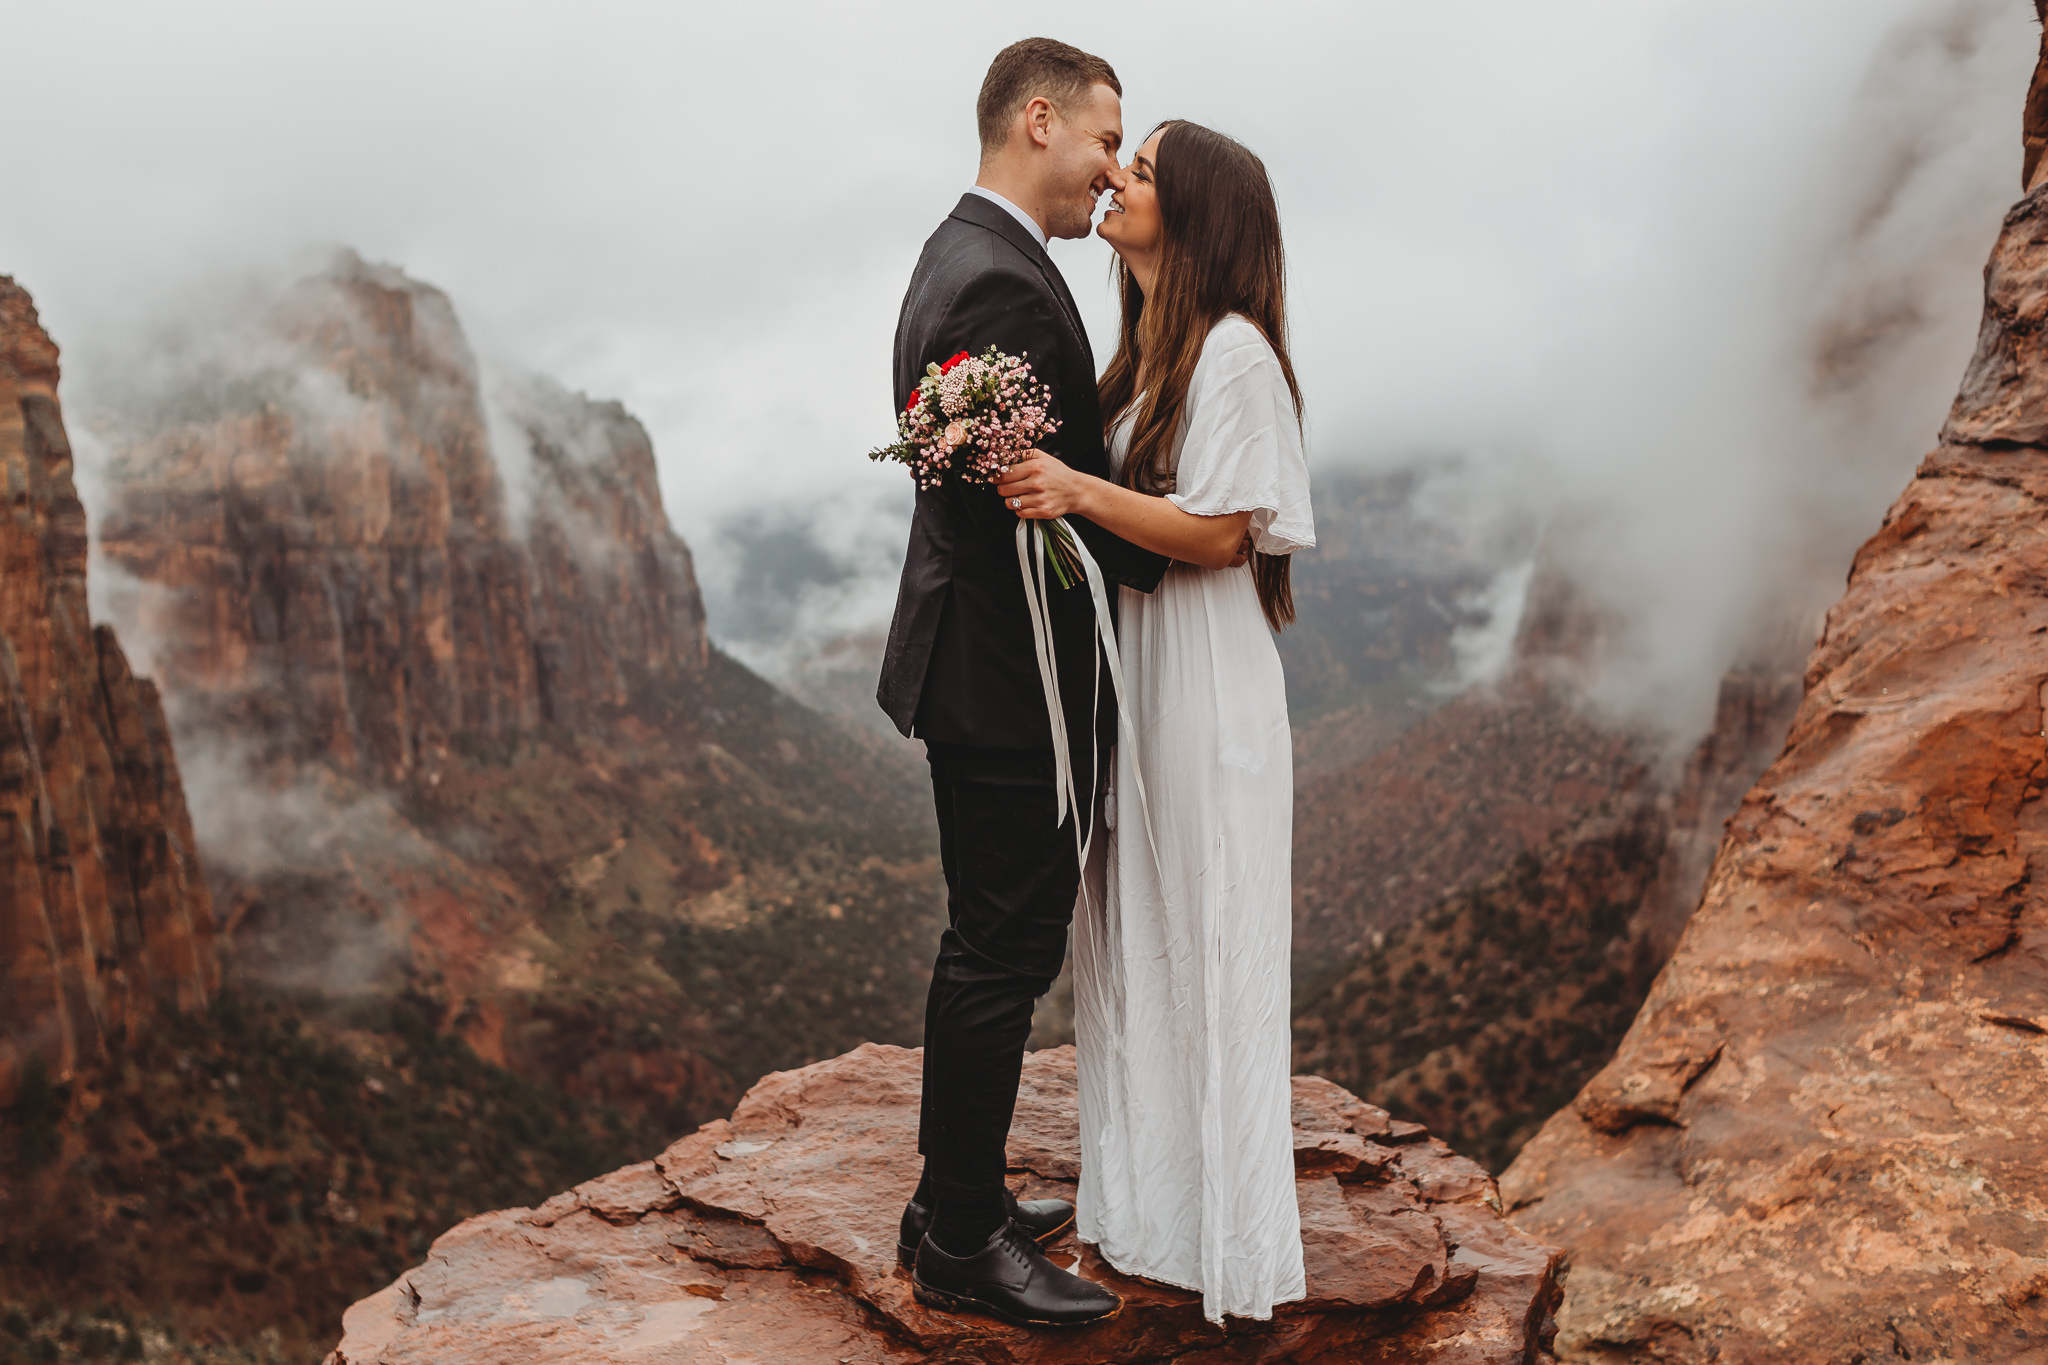 """""""SO FREAKING AMAZING!"""" - """"I loved the hike Aly and Justin brought us on— our pictures turned out so much better than I ever would've imagined. Their prompts brought out real emotion, the pictures are completely authentic, and the tones and edits that they bring out in the photos are so stunning. We love every single picture we got back!""""Bri + Ethan M."""